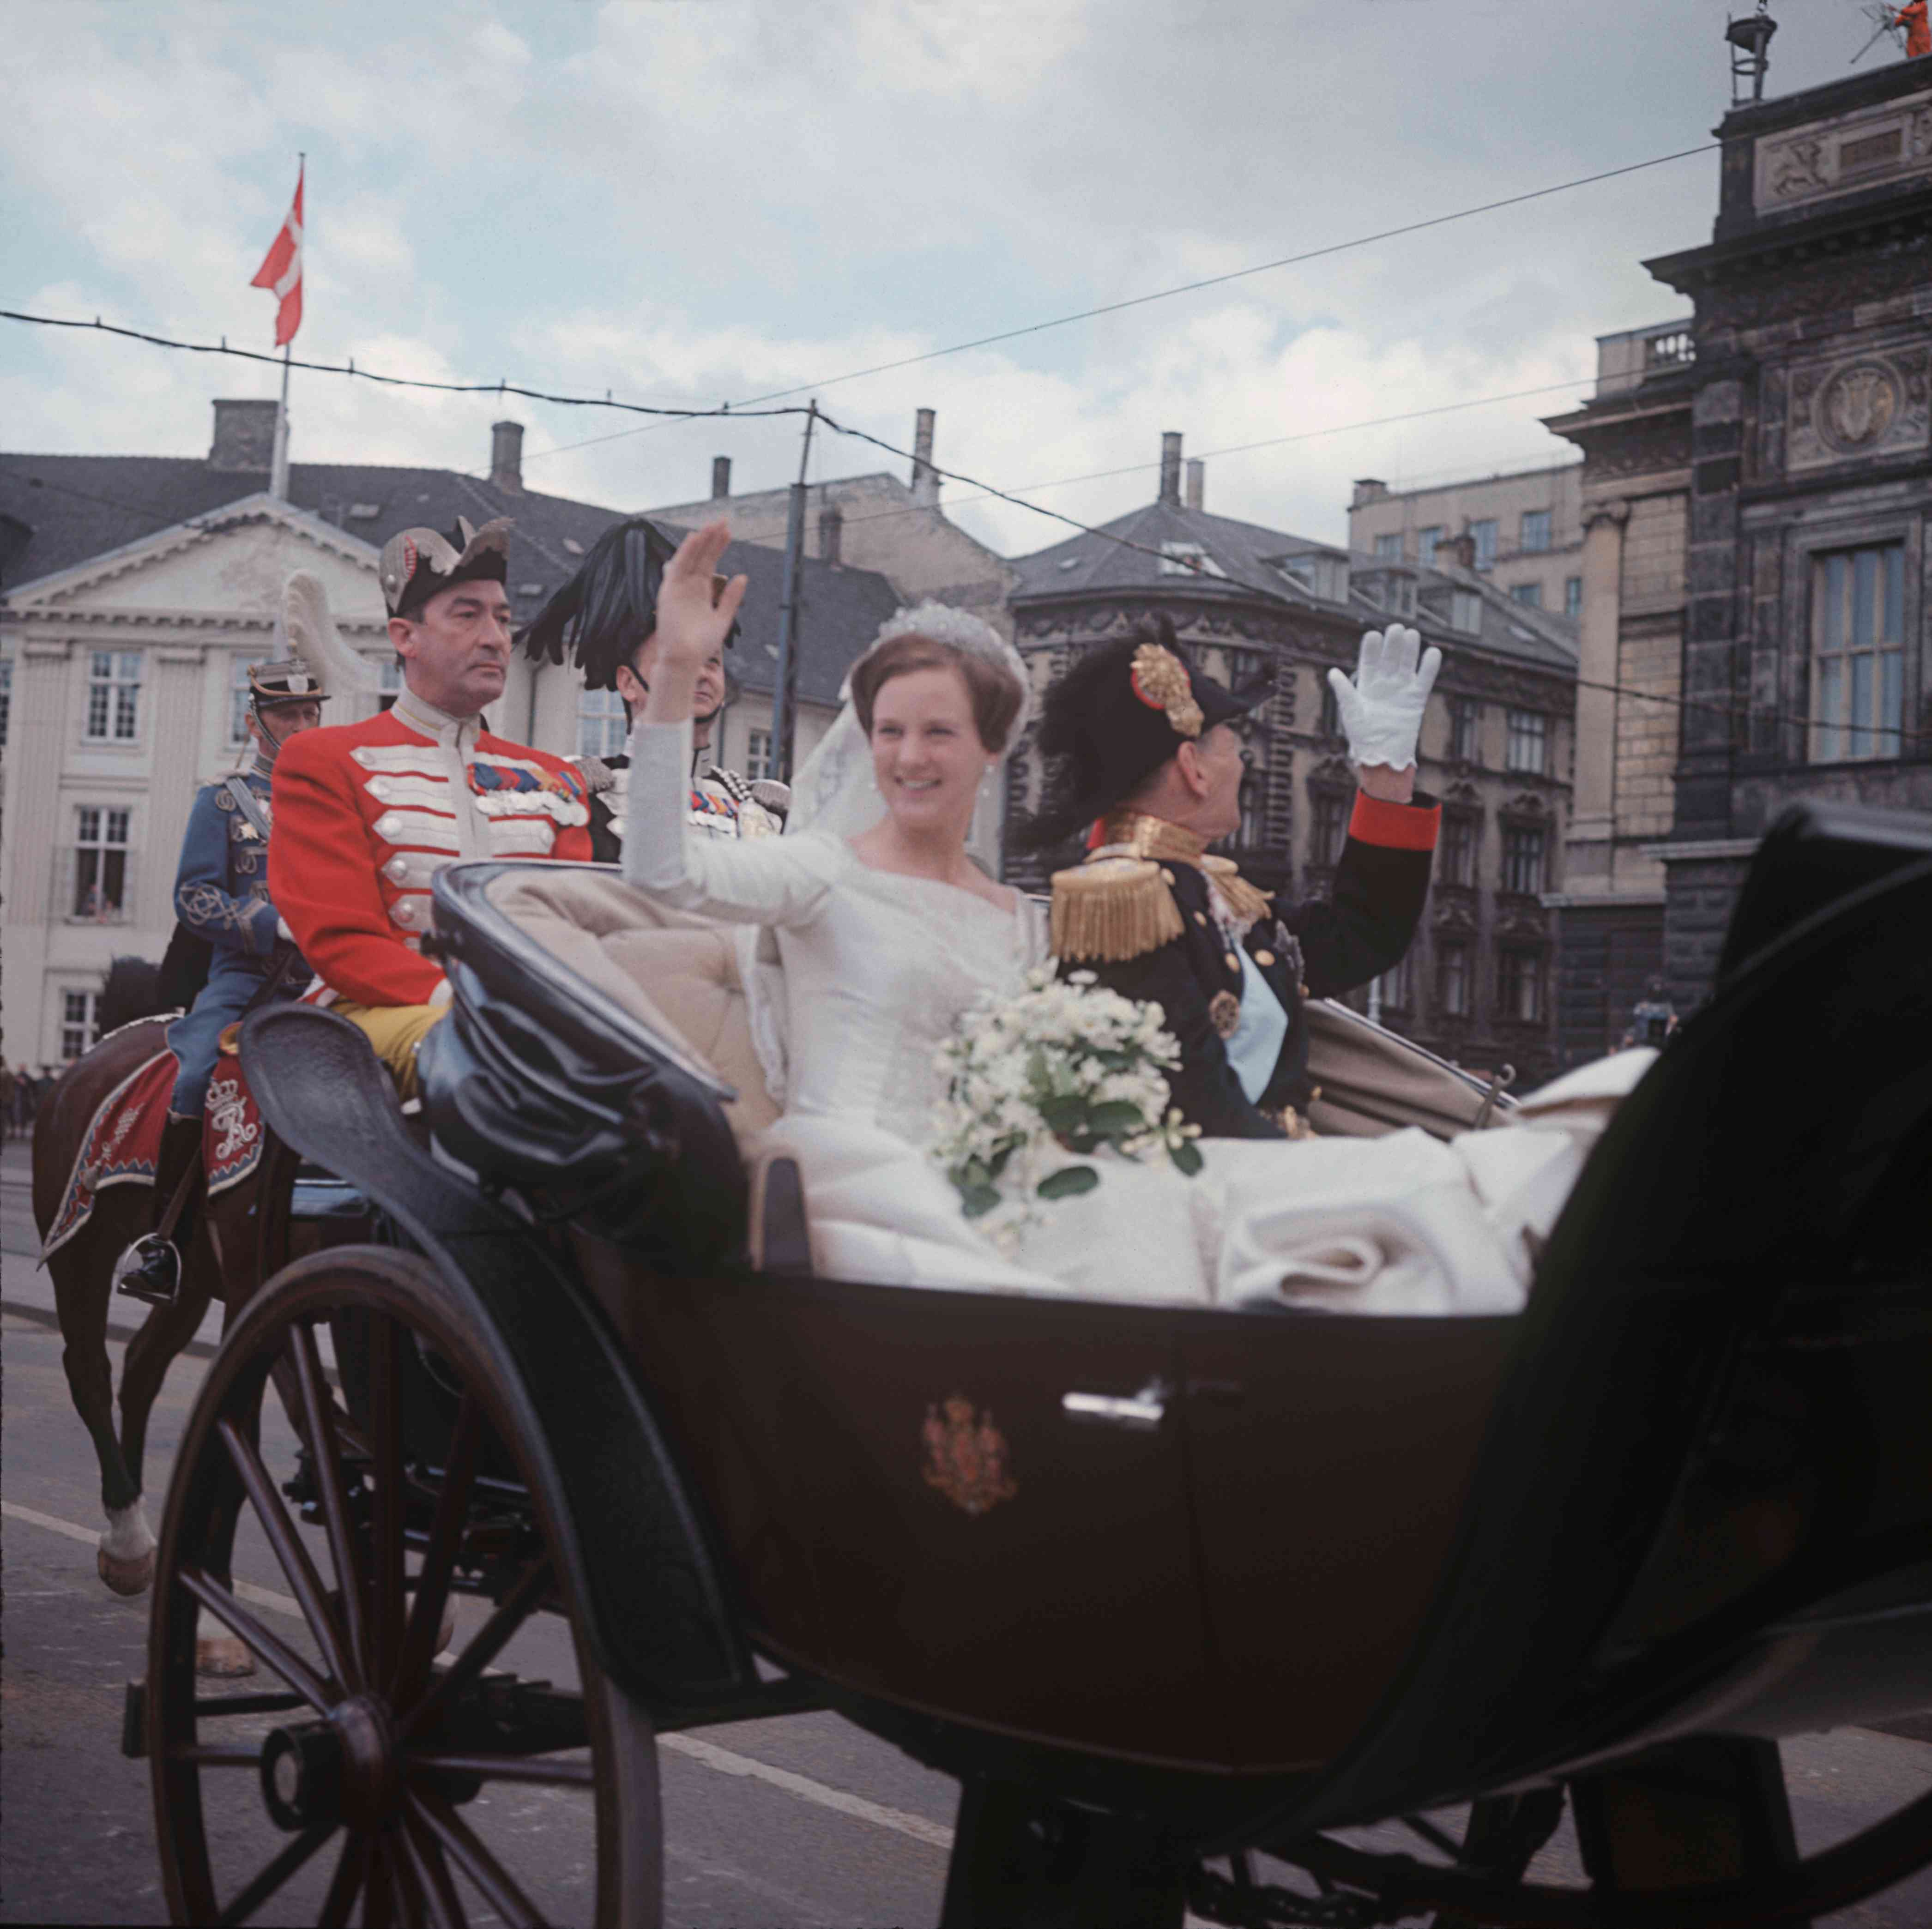 Princess Margrethe with her father King Frederik IX of Denmark before her wedding